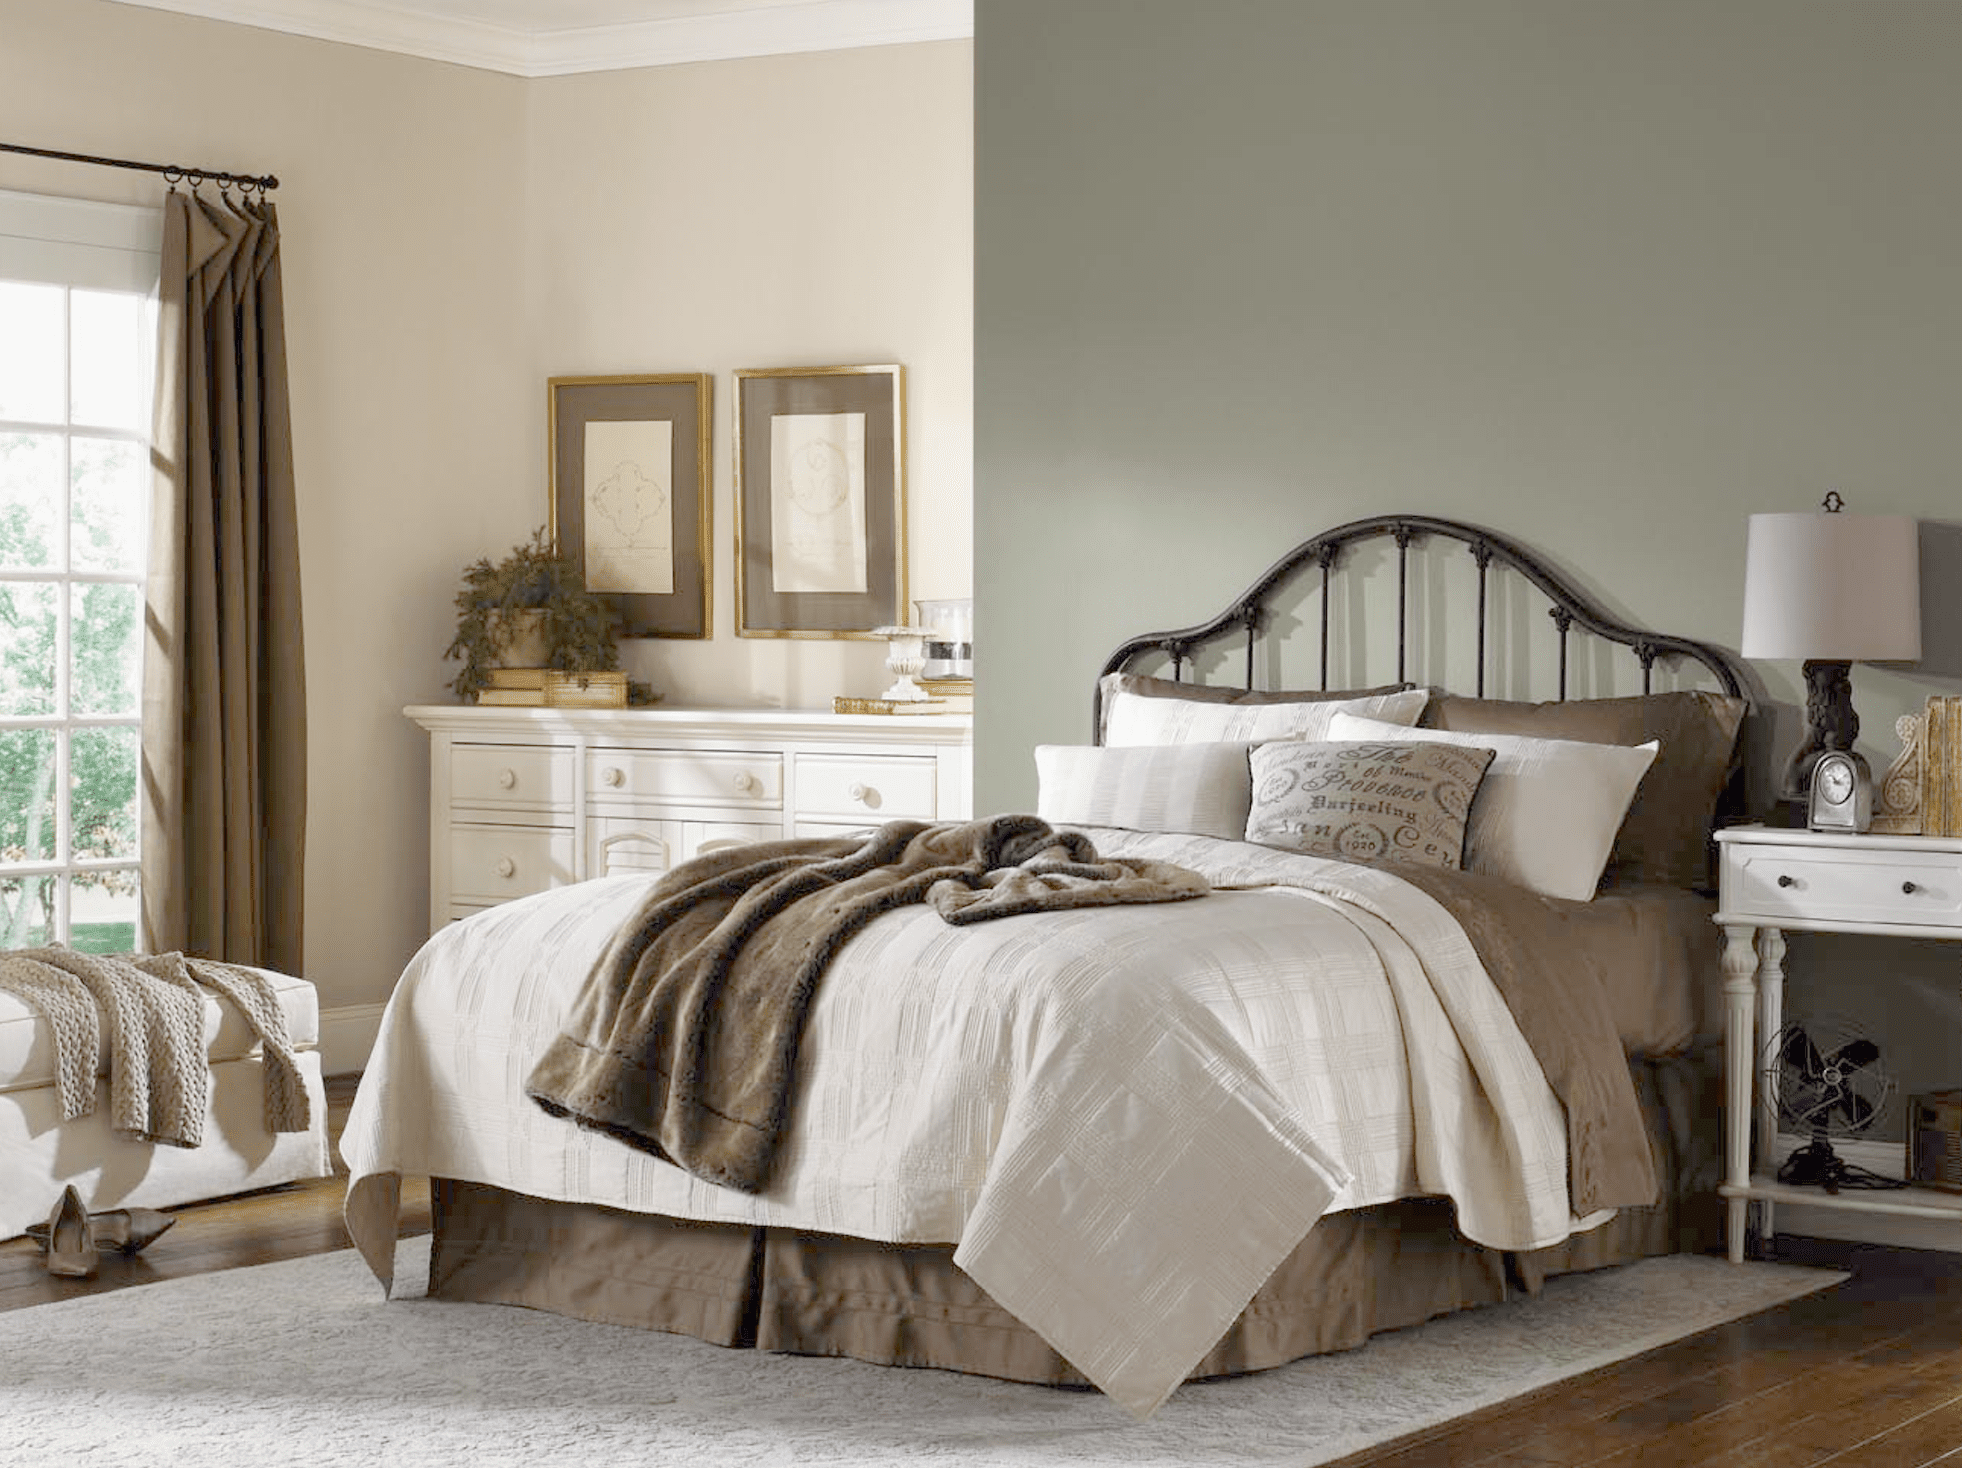 8 Relaxing Sherwin Williams Paint Colors For Bedrooms